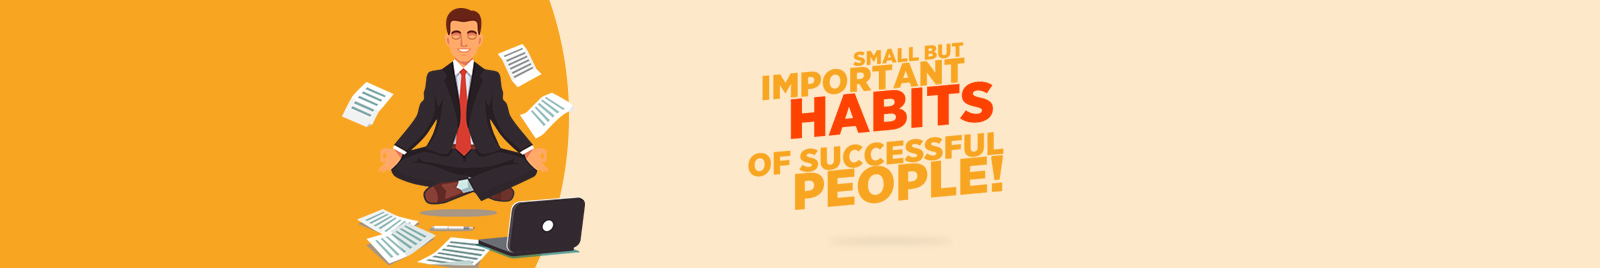 SMALL BUT IMPORTANT HABITS OF SUCCESSFUL PEOPLE!